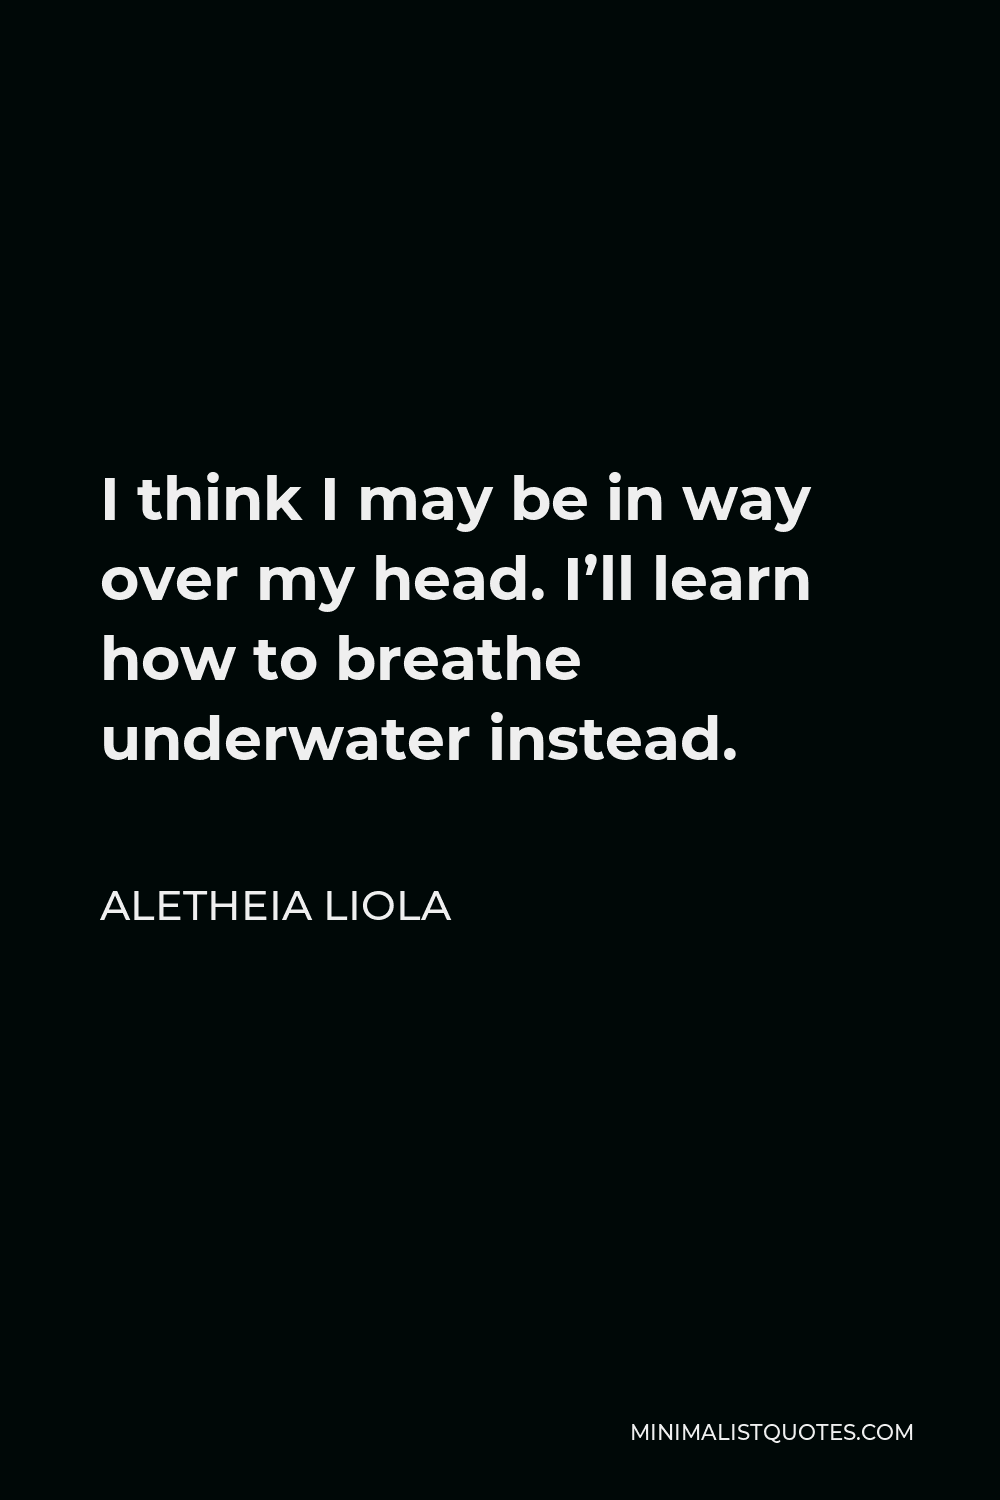 Aletheia Liola Quote - I think I may be in way over my head. I'll learn how to breathe underwater instead.